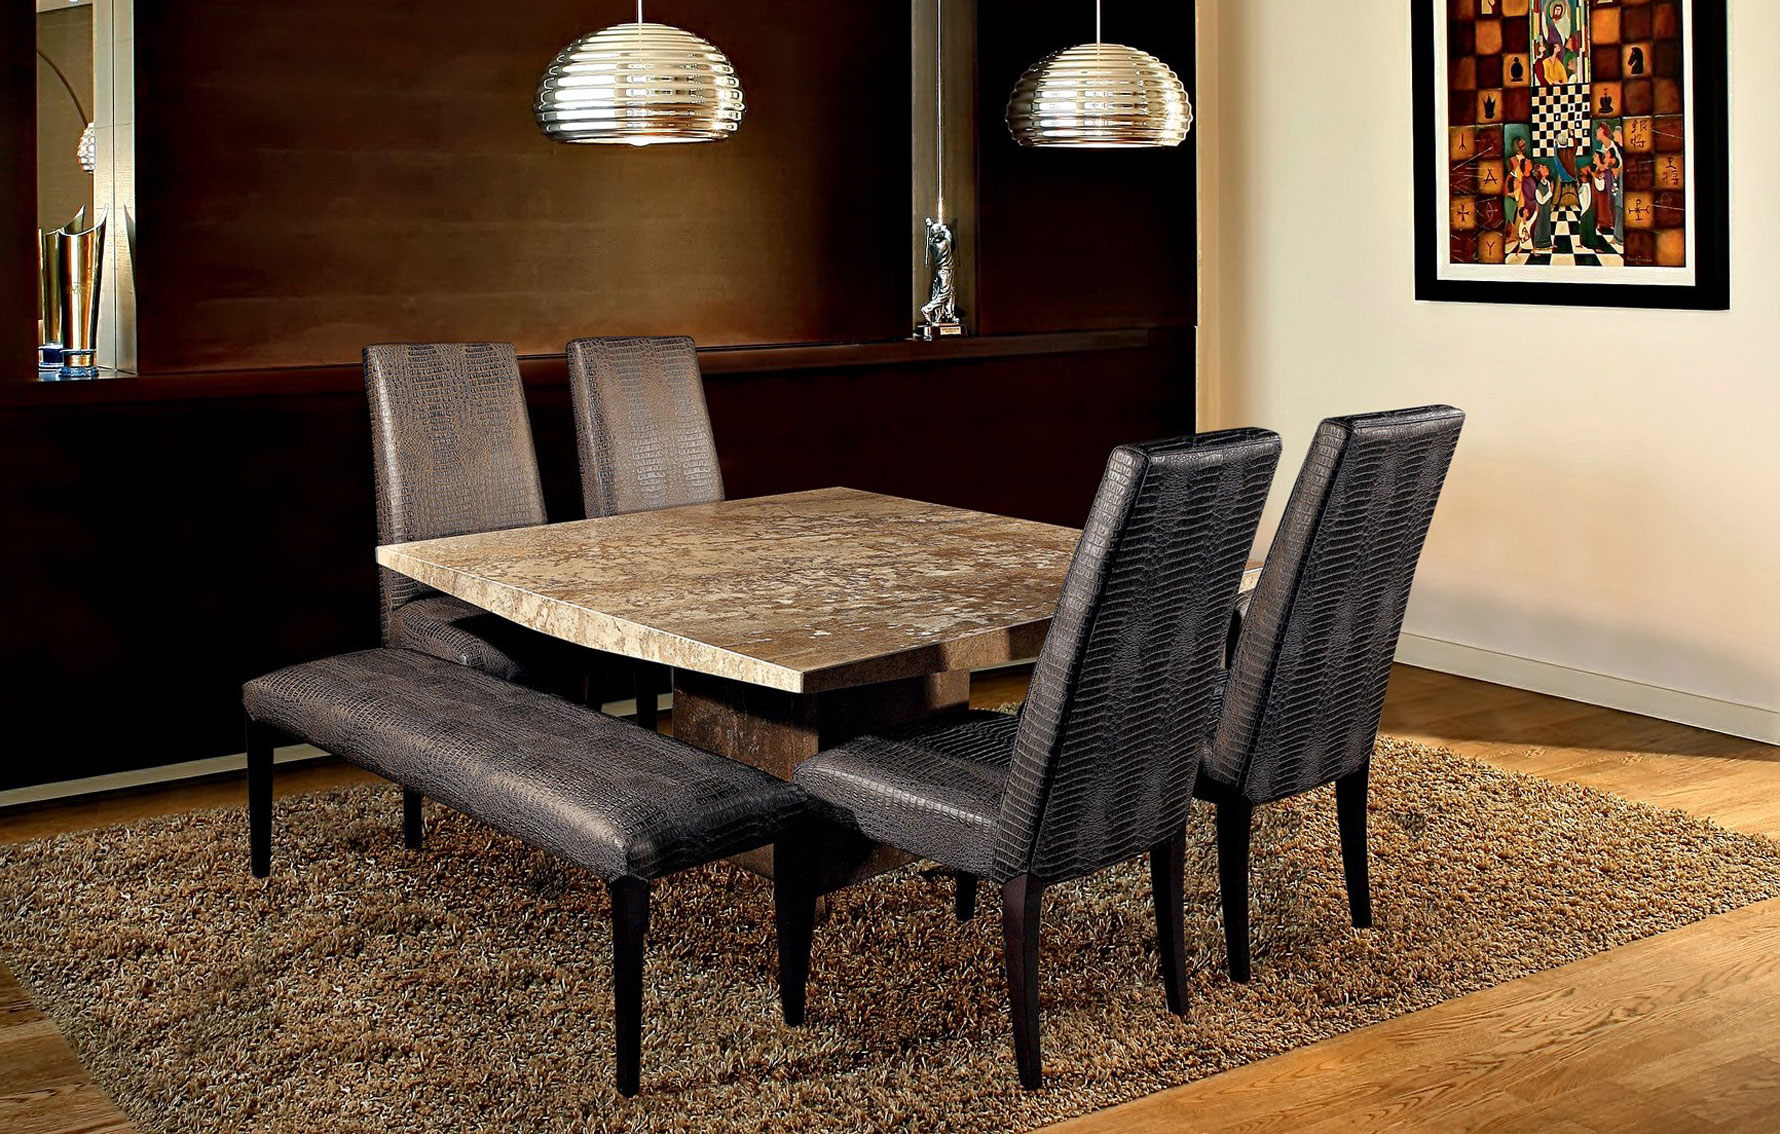 stone-international-natural-stone-dining-chairs-and-benches